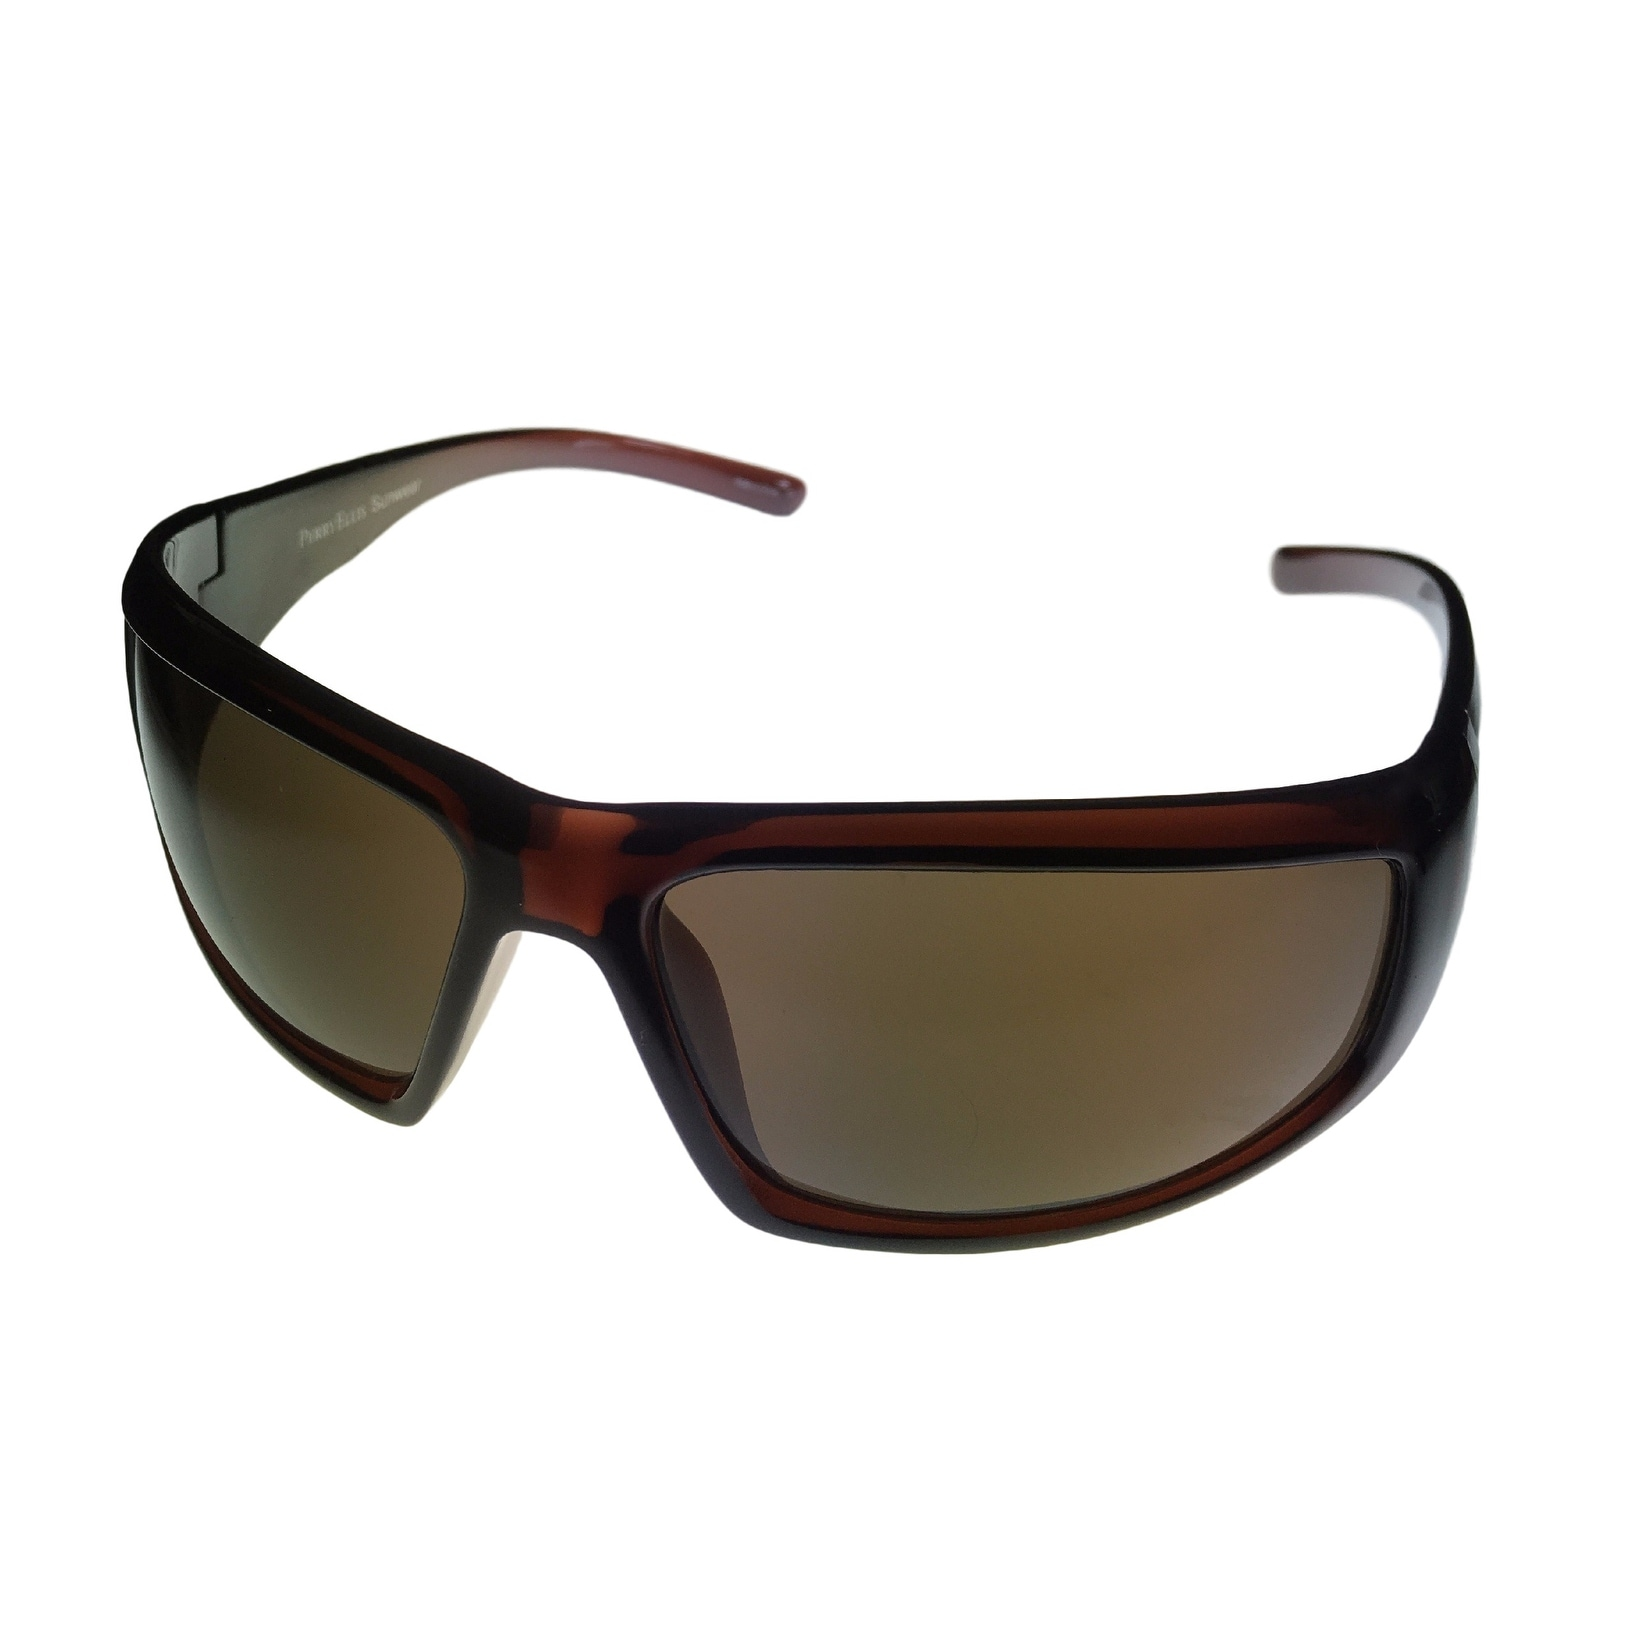 Perry Ellis Mens Sunglass PE17 1 Dark Crystal Brown Plastic Wrap, Gradient Lens - Medium - Thumbnail 0